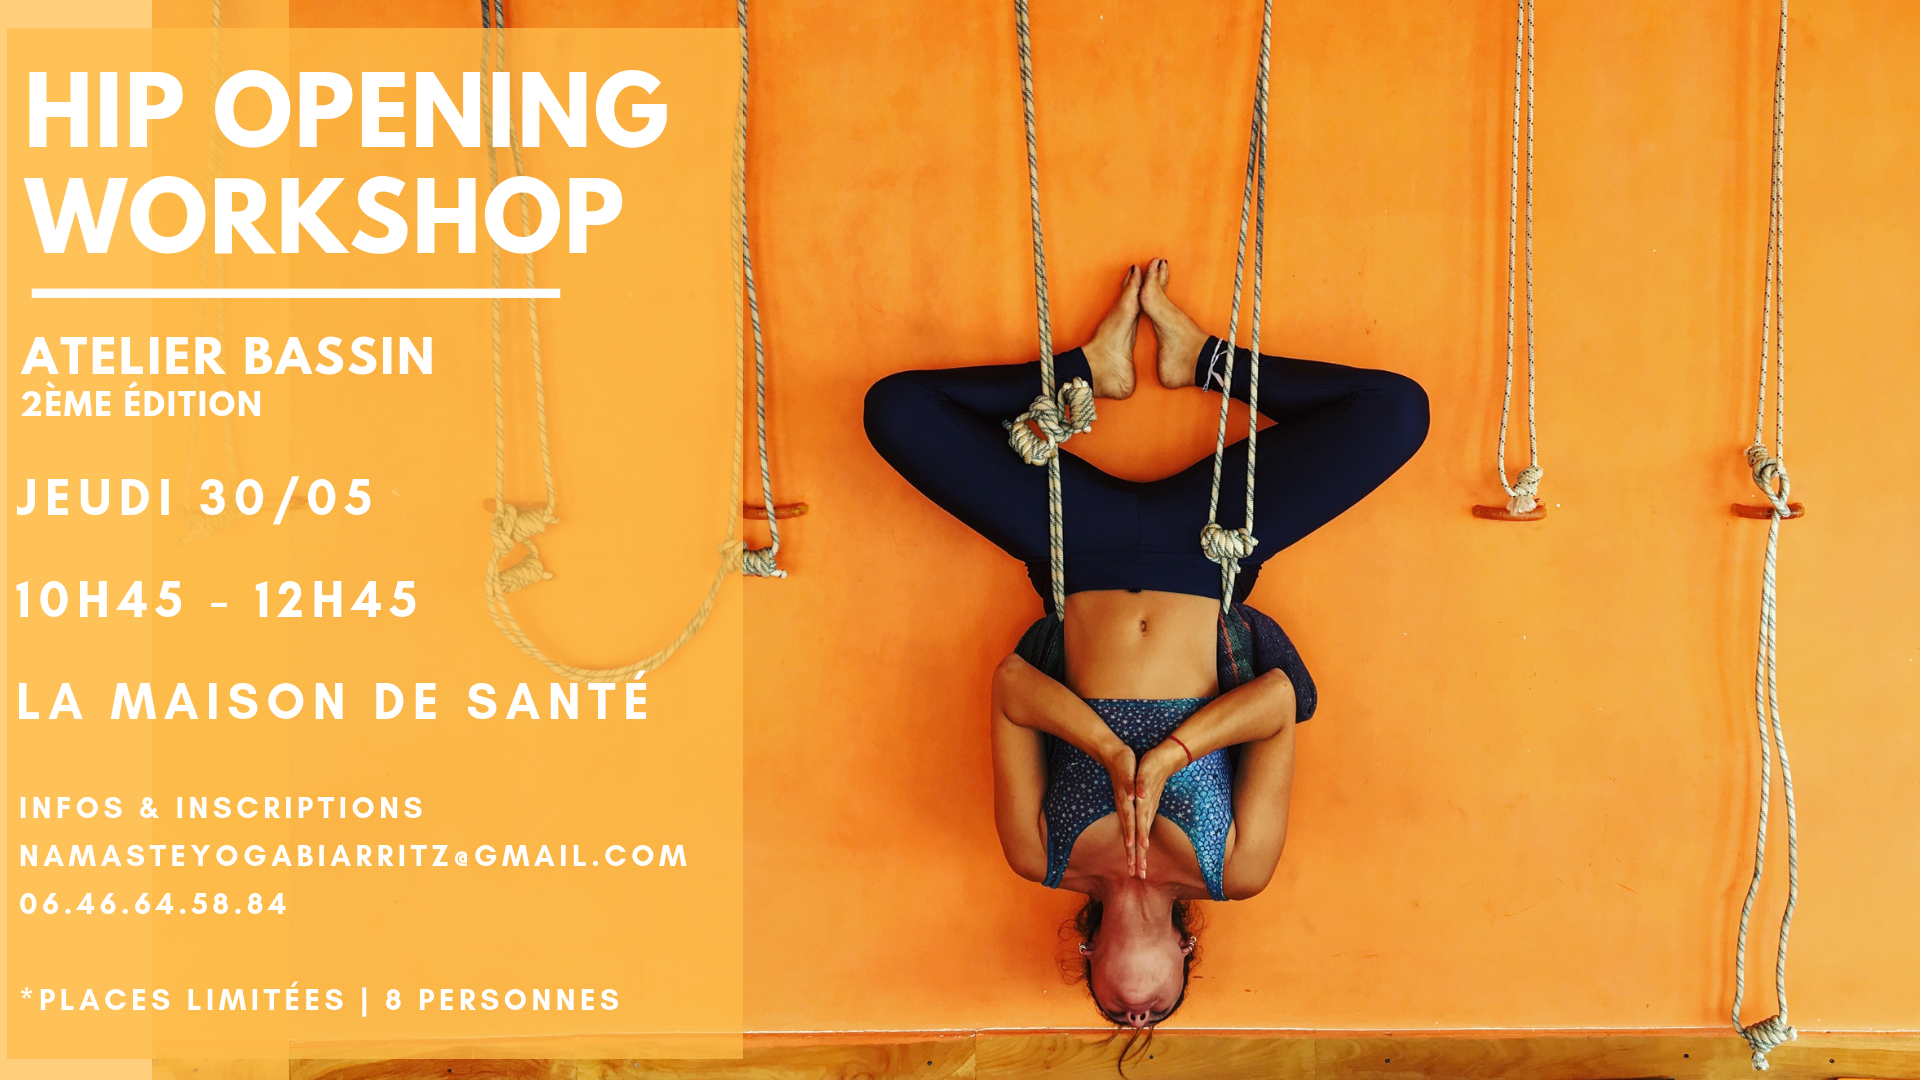 Hip Opening Workshop